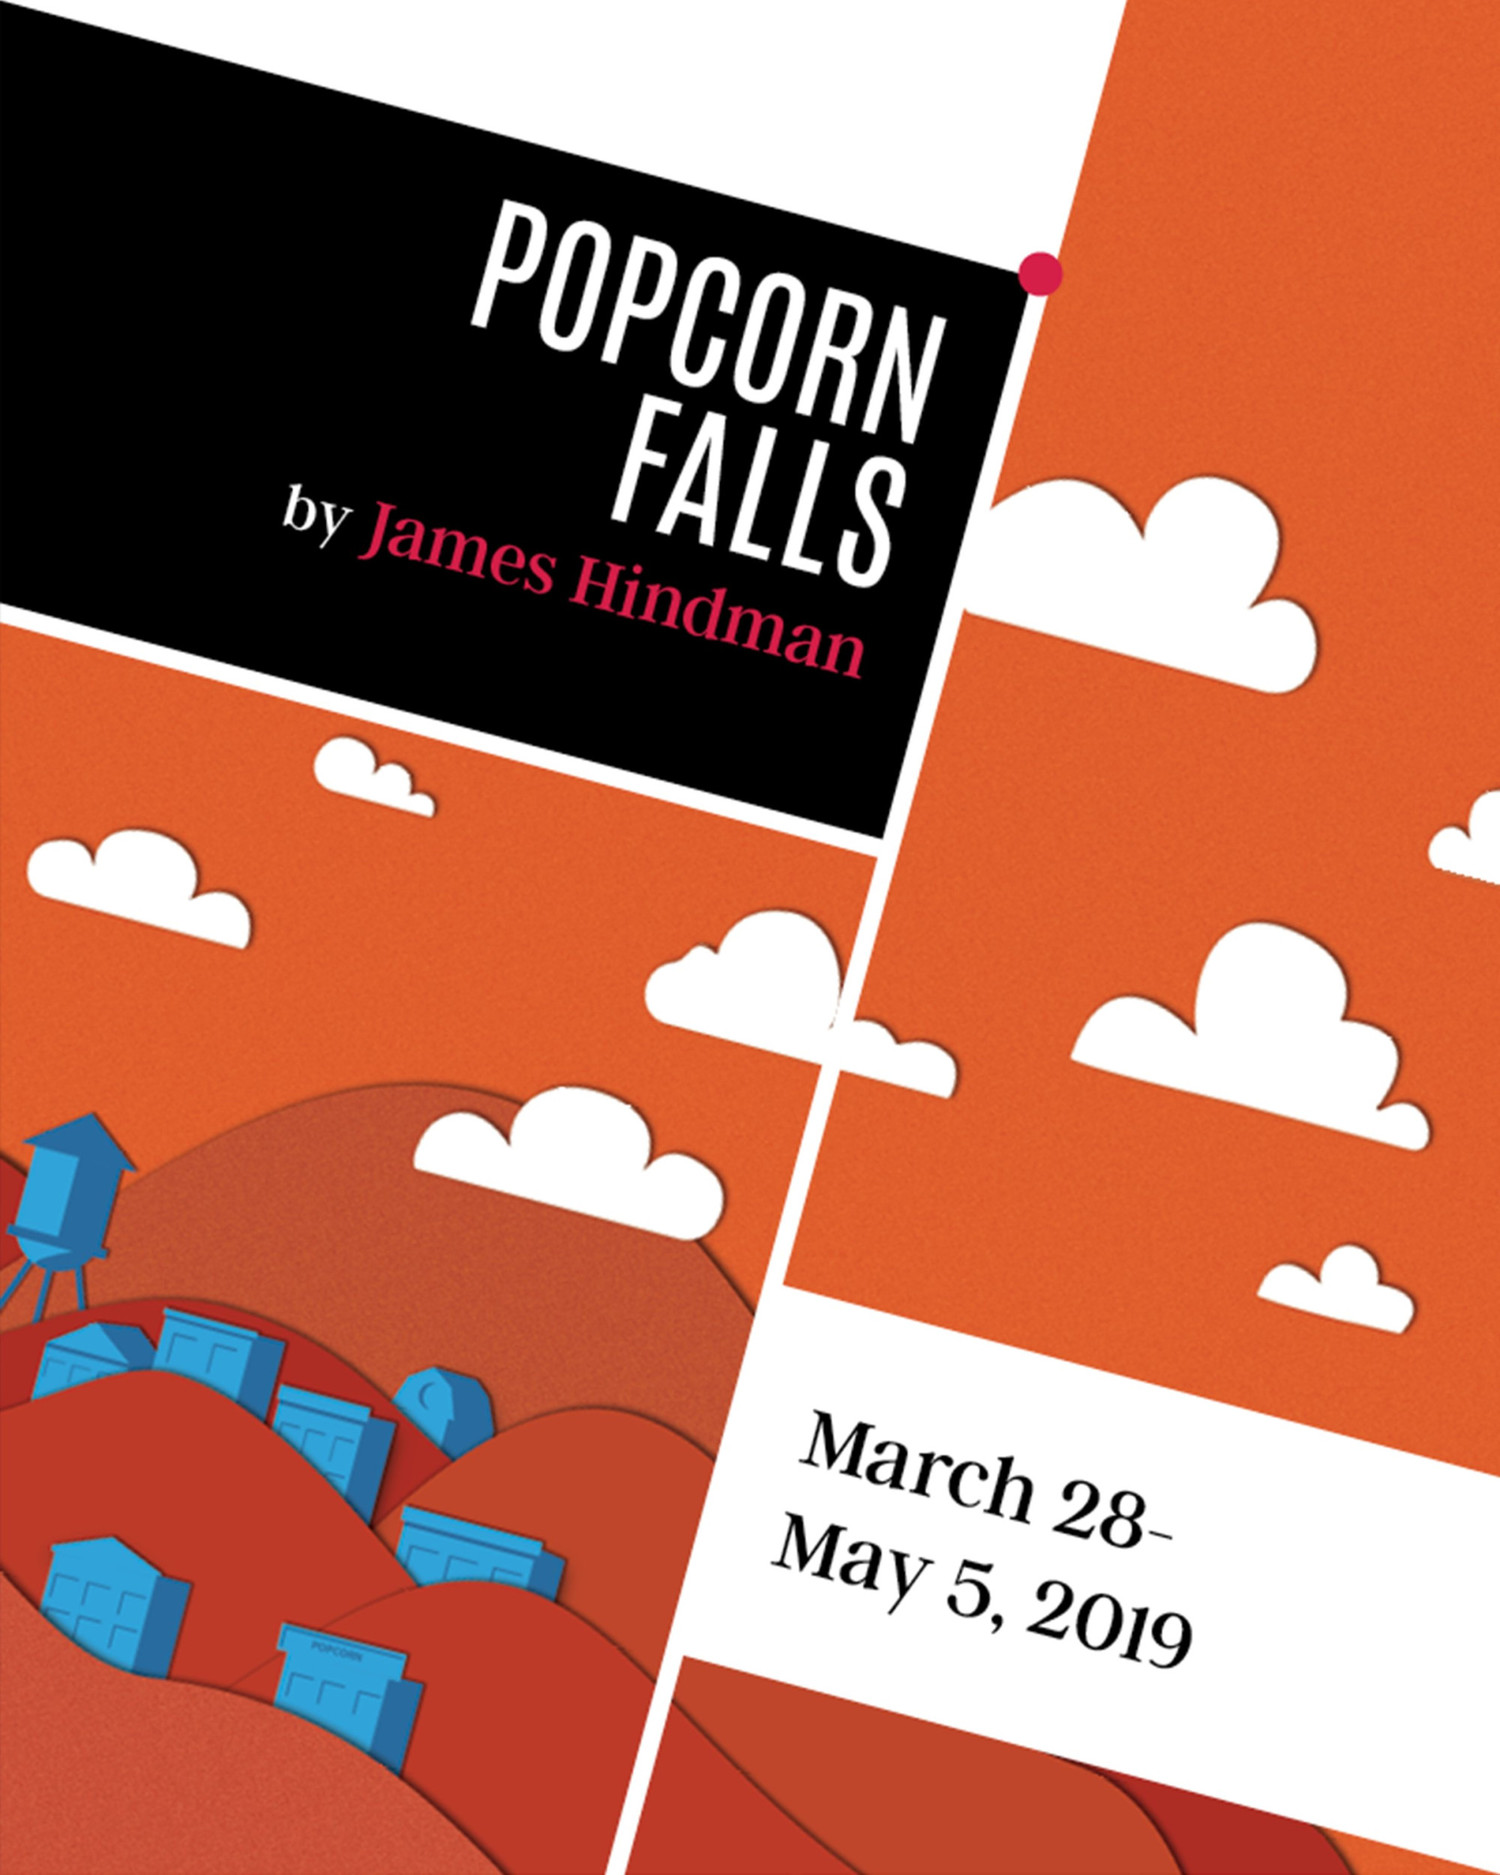 BWW Review: POPCORN FALLS at Tipping Point Theatre Will Leave You In Stitches!